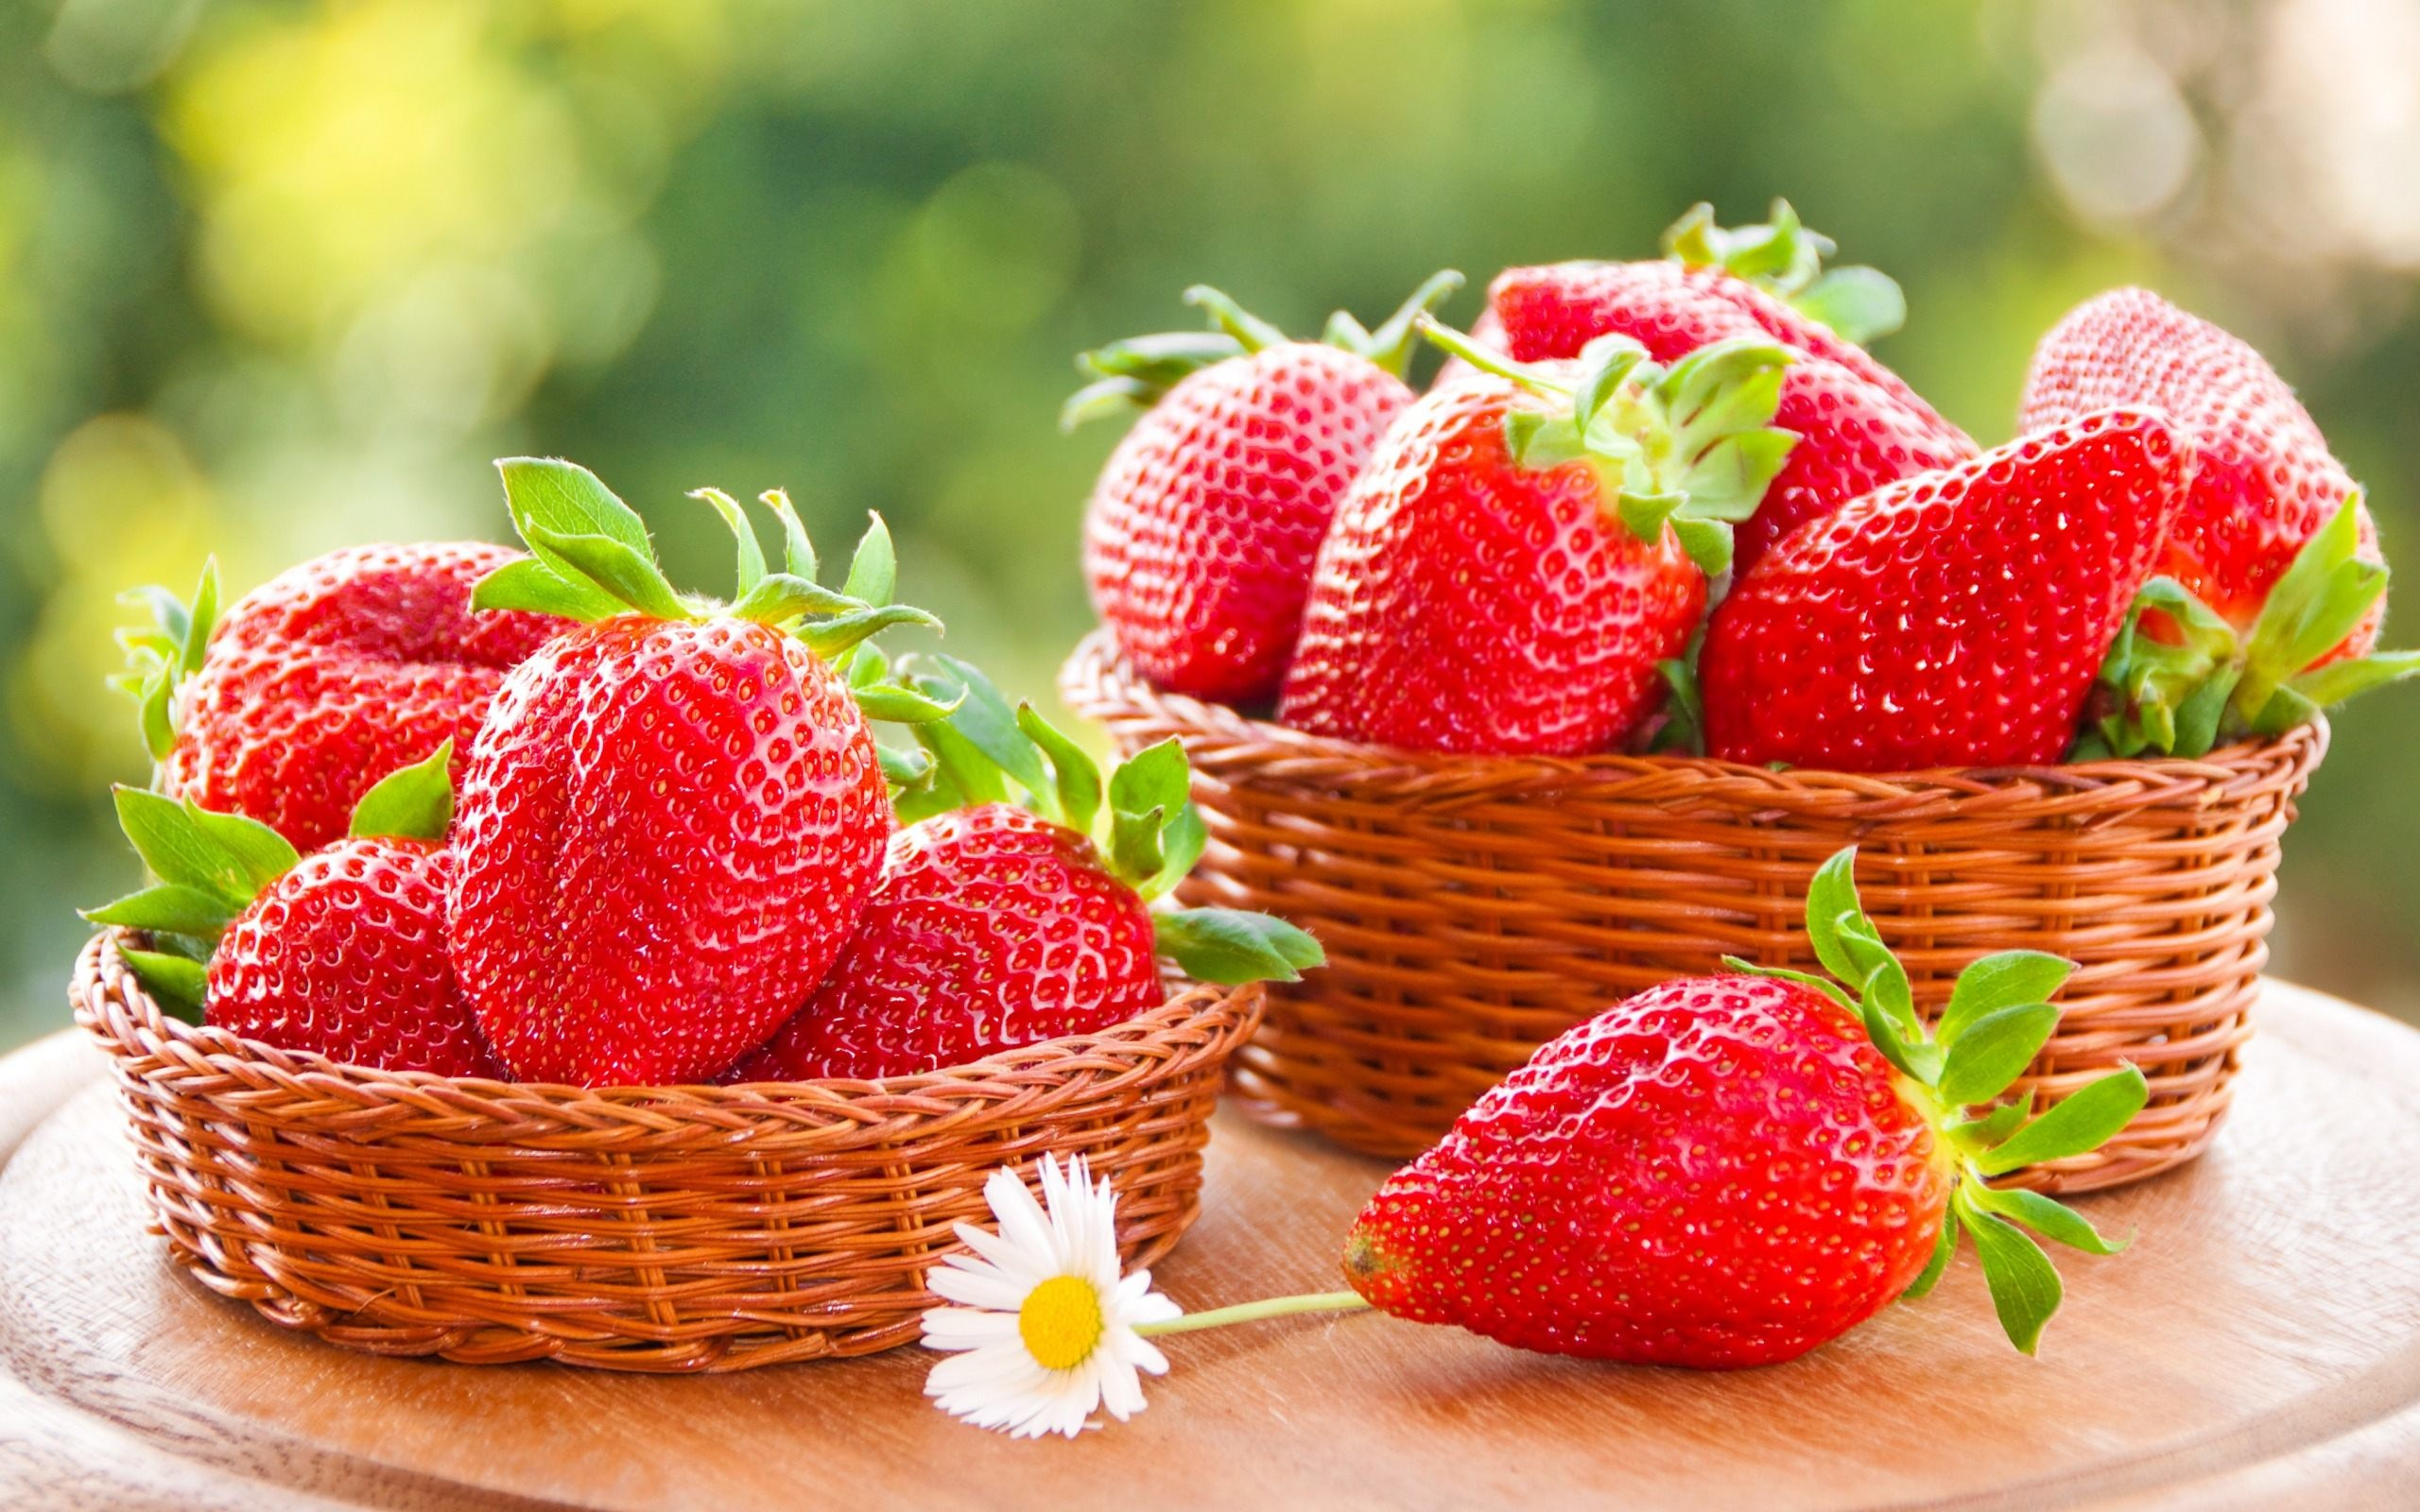 Strawberry Fruit Background Wallpaper For Desktop & Mobile